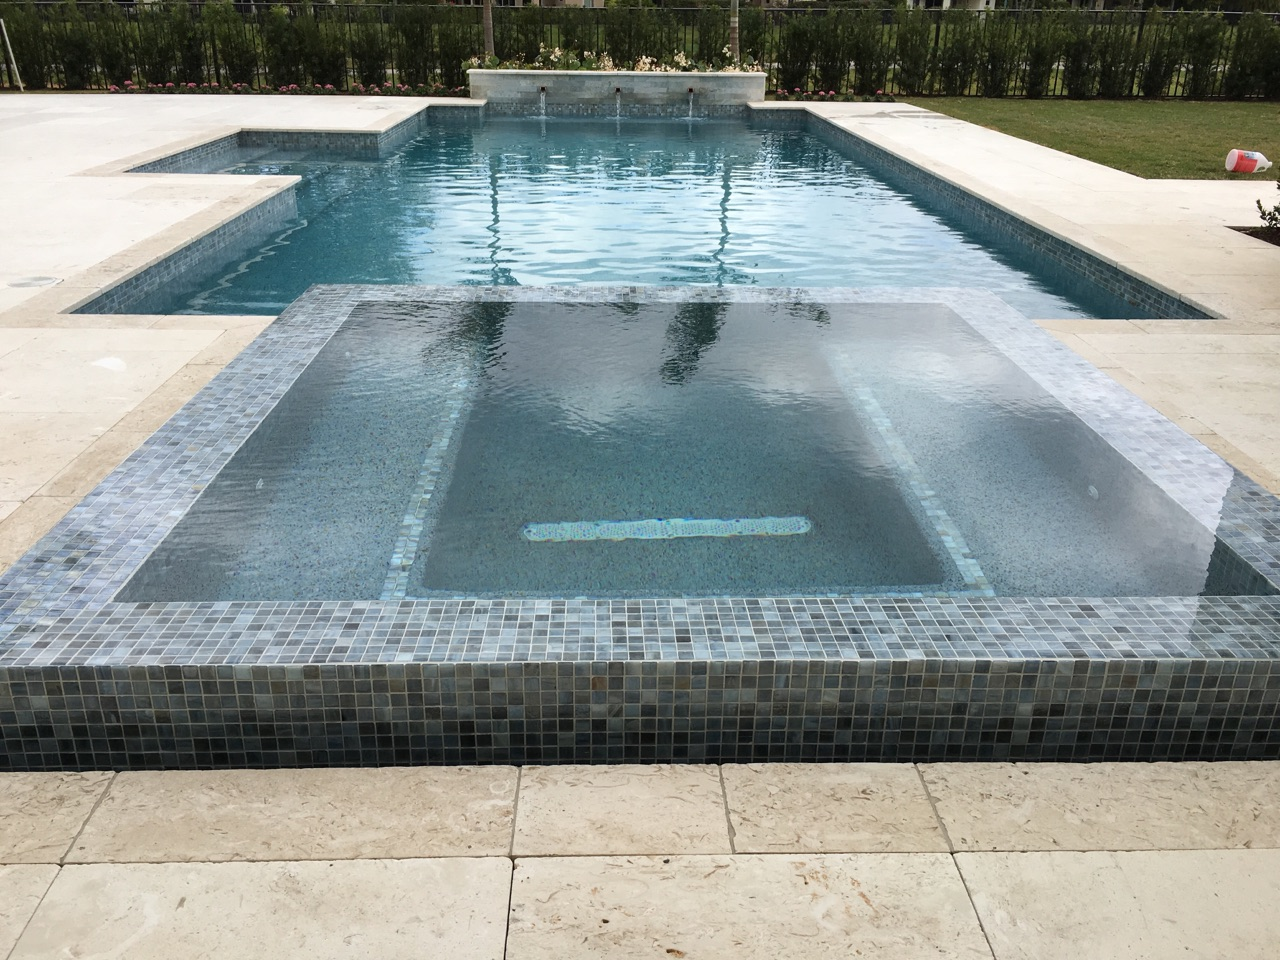 rhr pools of jupiter infinit spa with mosaic tile, raised wall with water feature